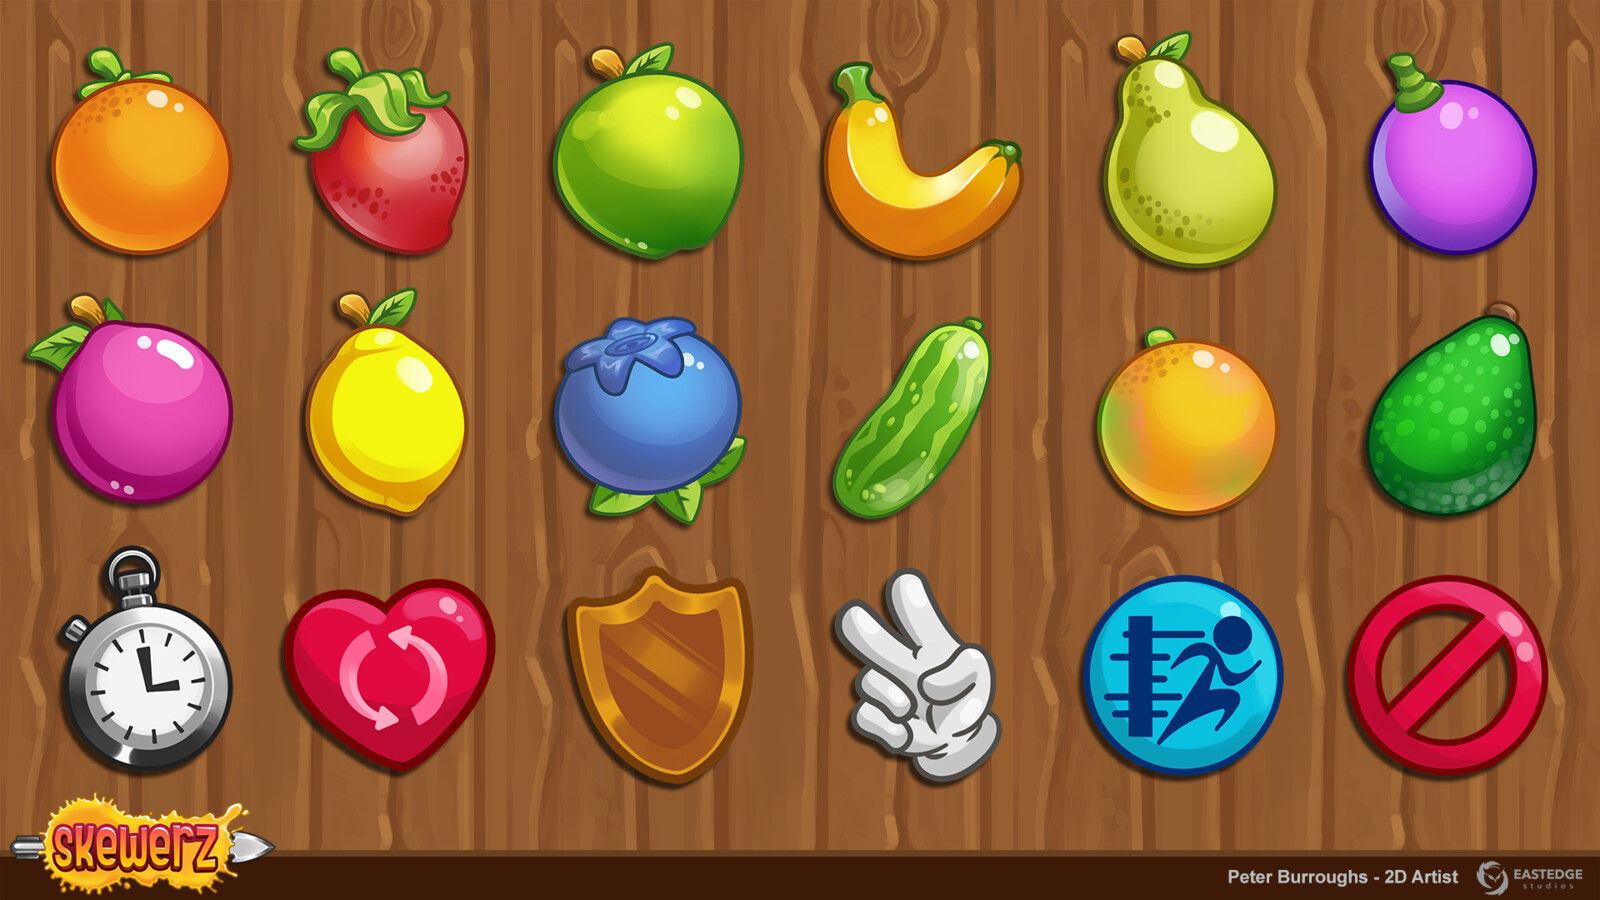 Fruits and powerups to collect throughout the game